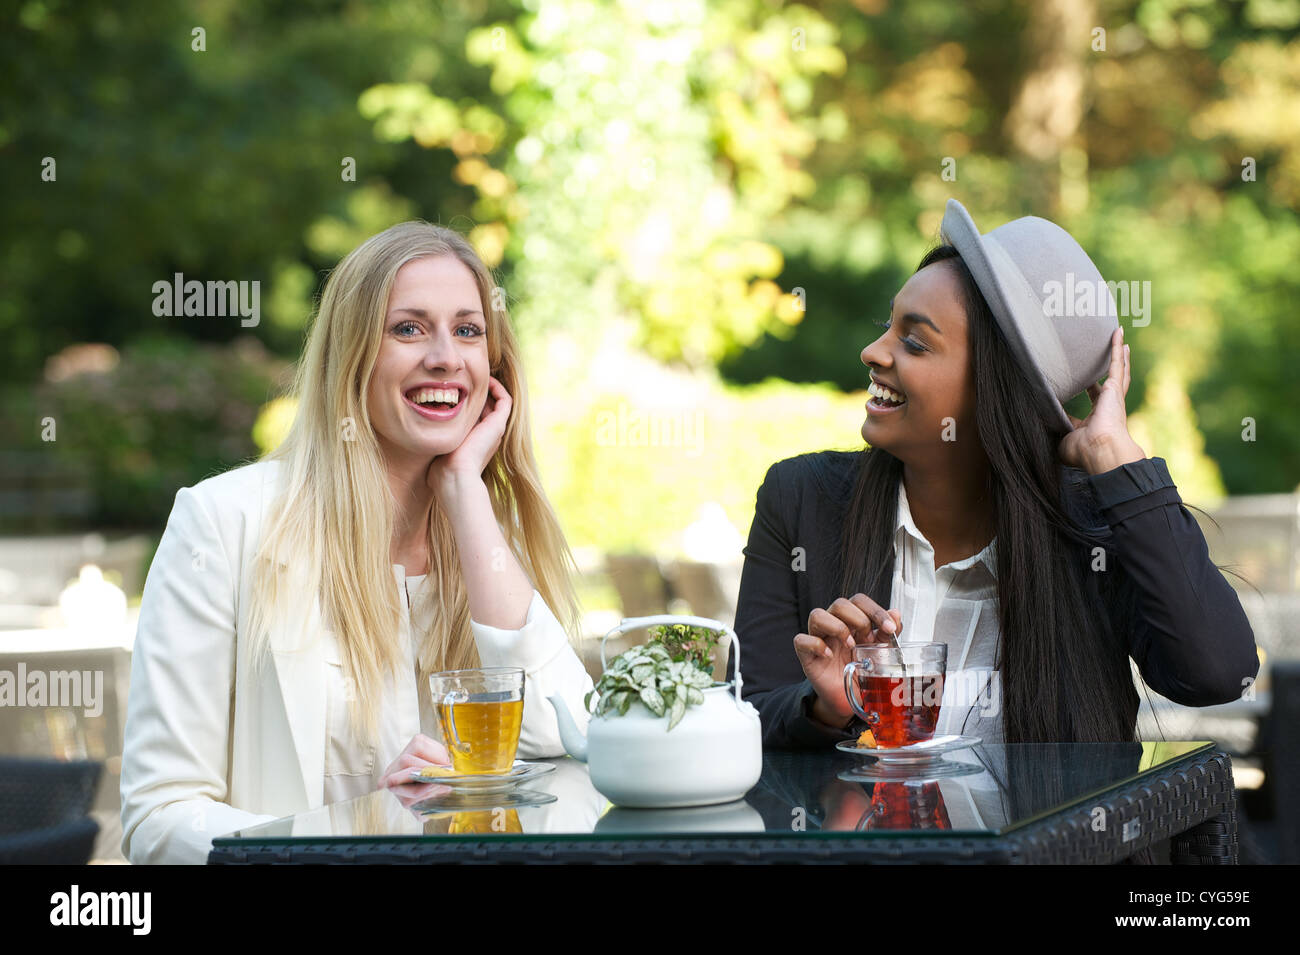 A couple of female friends sitting outdoors and smiling while drinking a cup of tea - Stock Image